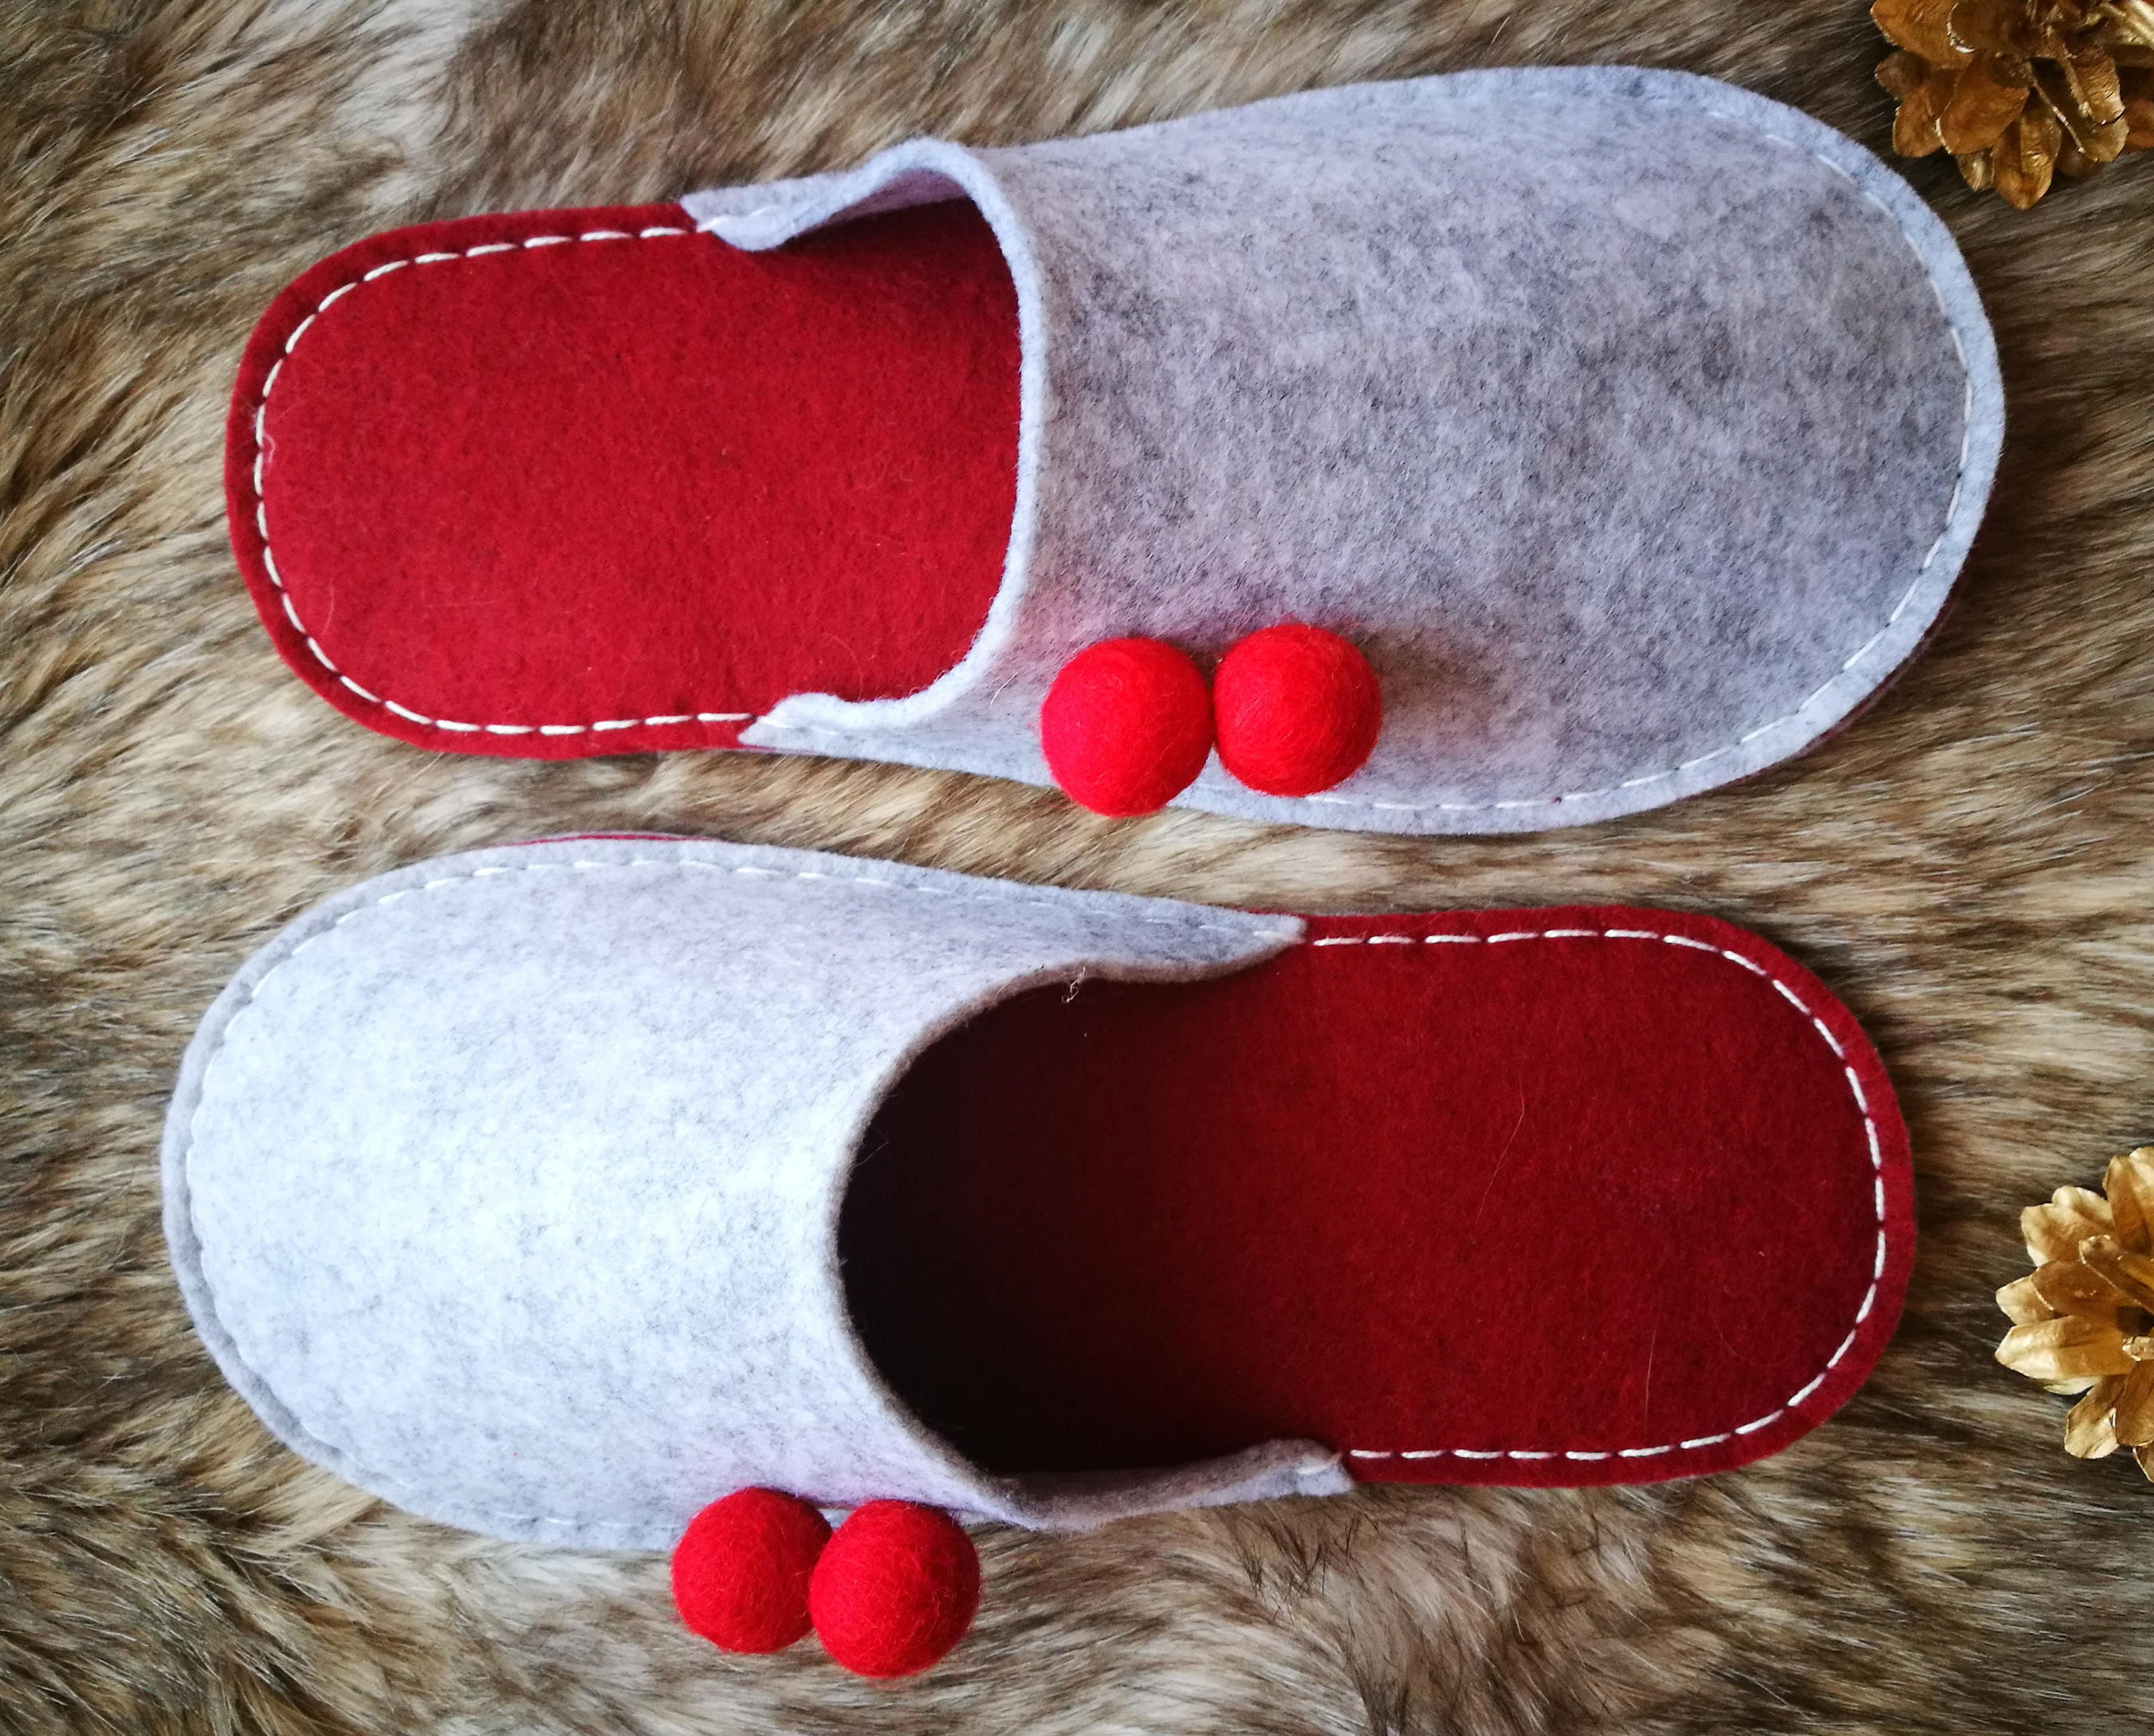 Felt slippers with red felted womens wool balls Felted slippers womens felted slippers House shoes Indoos slippers Christmas gift Warm slippers Birthday f9b0ea